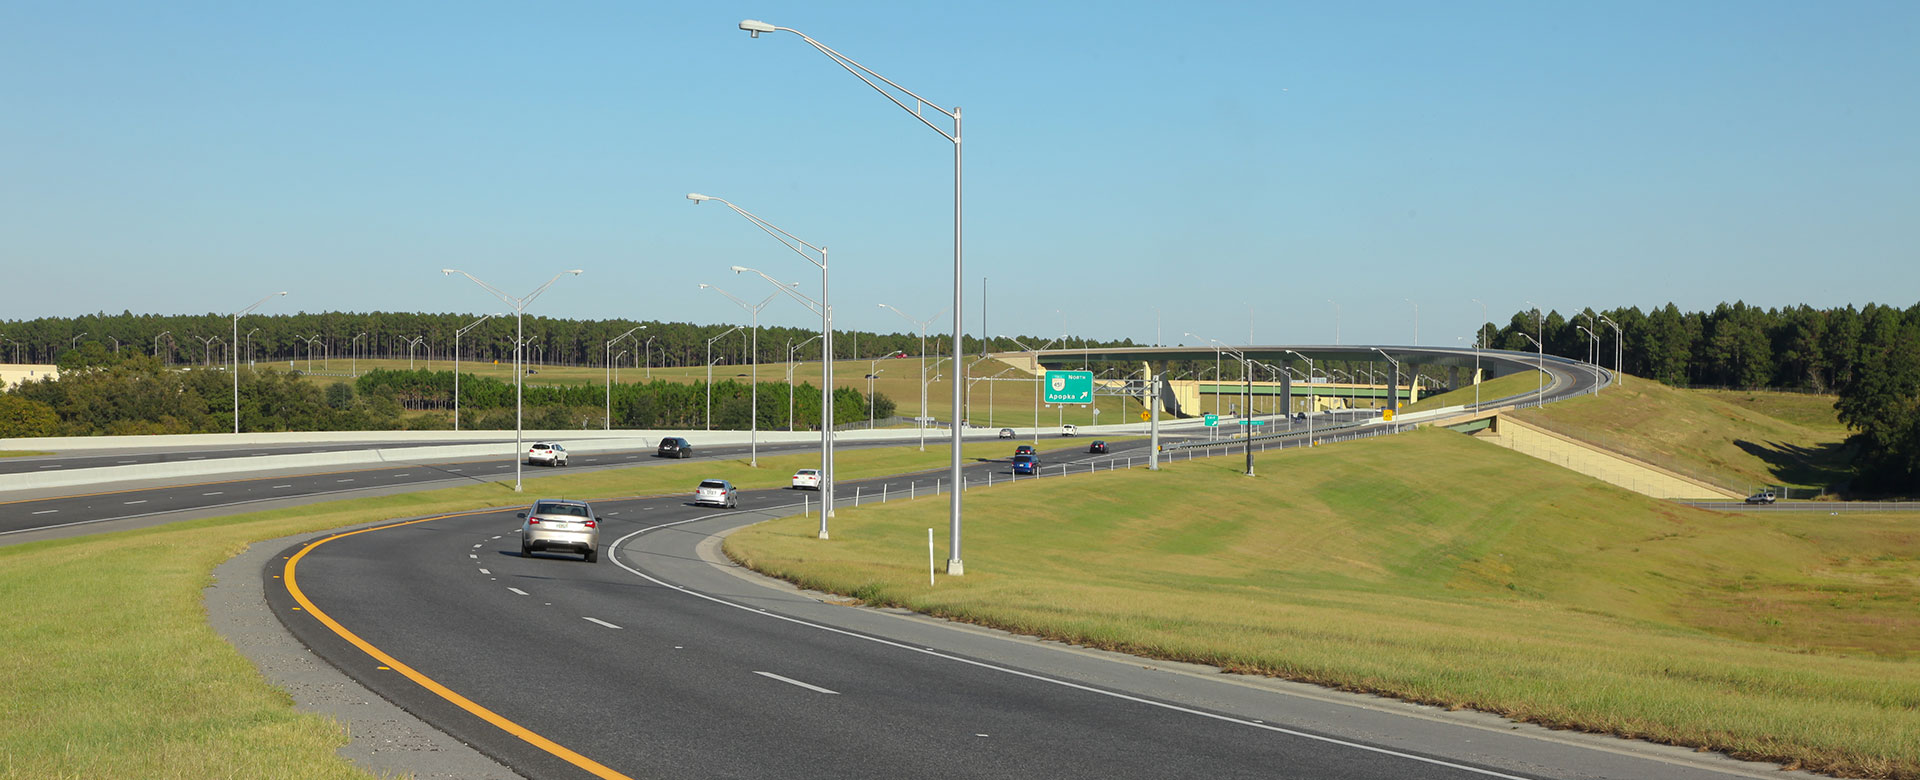 Central Florida Expressway toll road 429 at toll road 414 exchange to Apopka